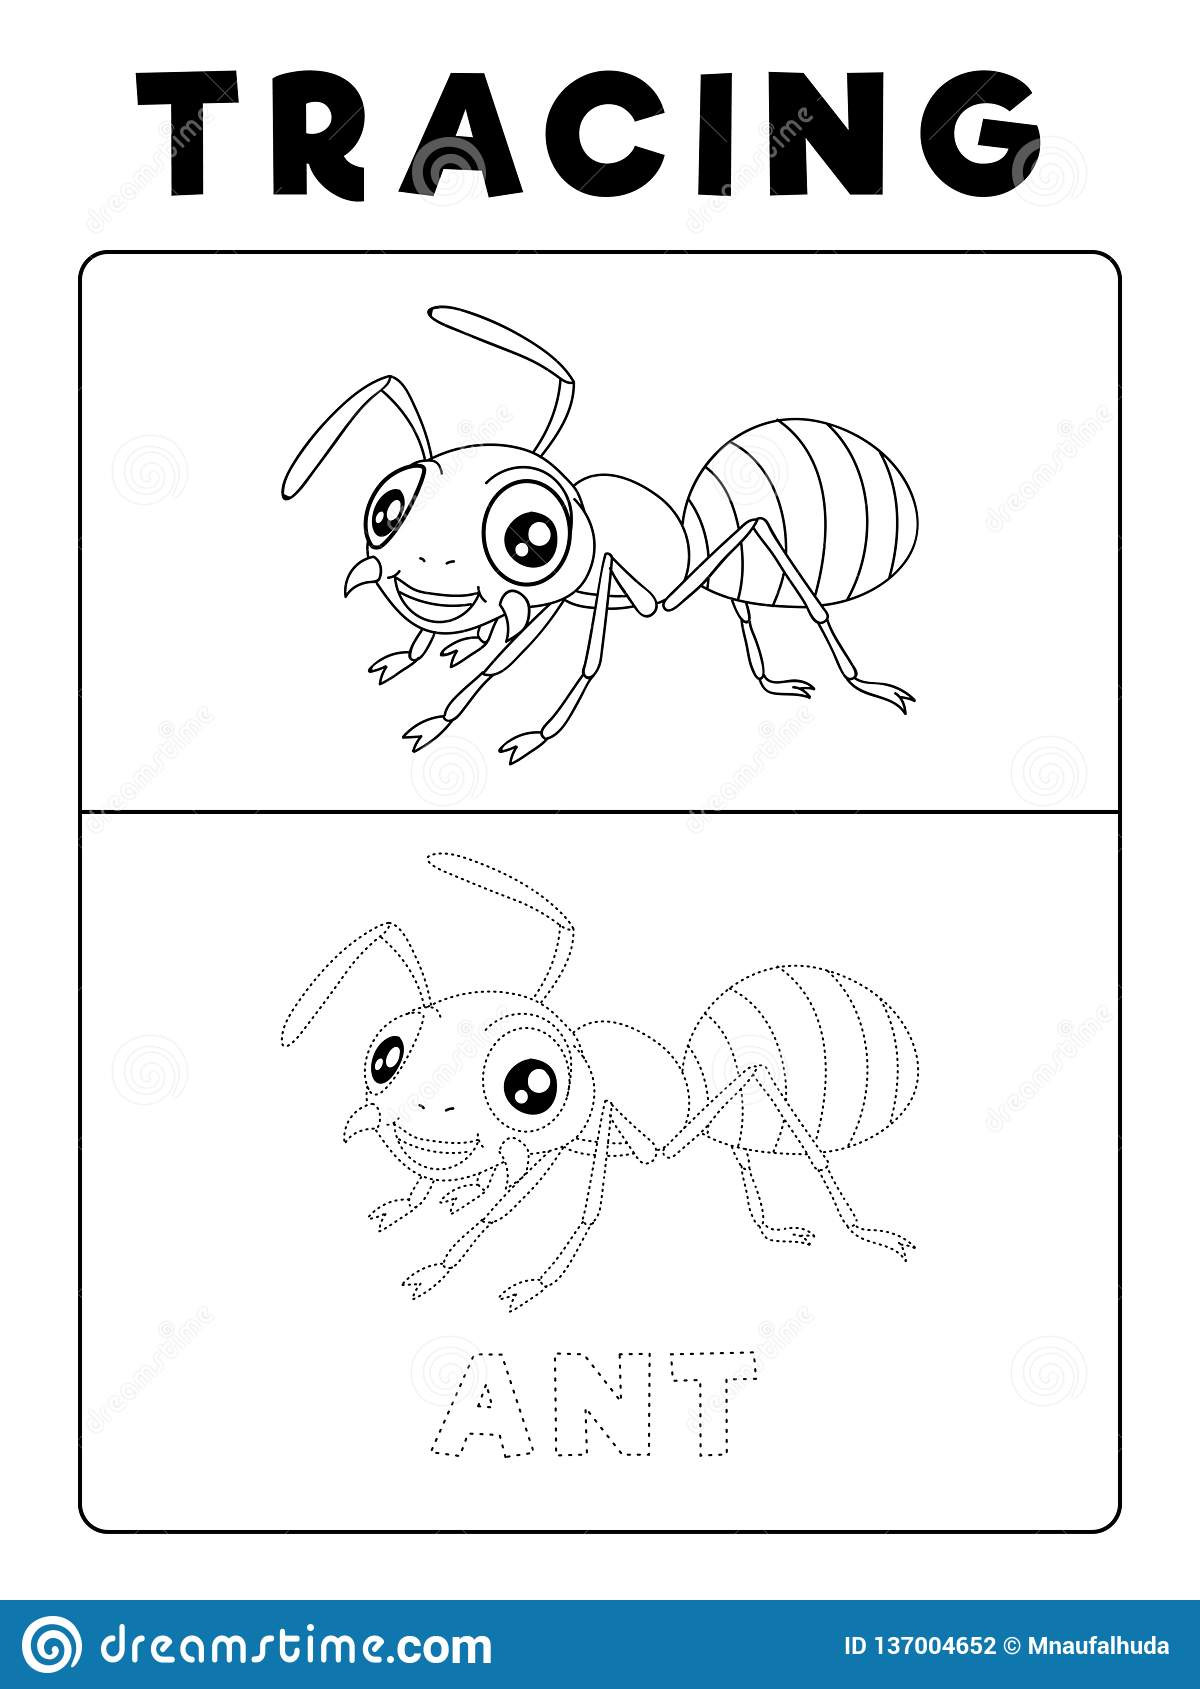 Preschool Bug Worksheets Funny Ant Insect Animal Tracing Book with Example Preschool